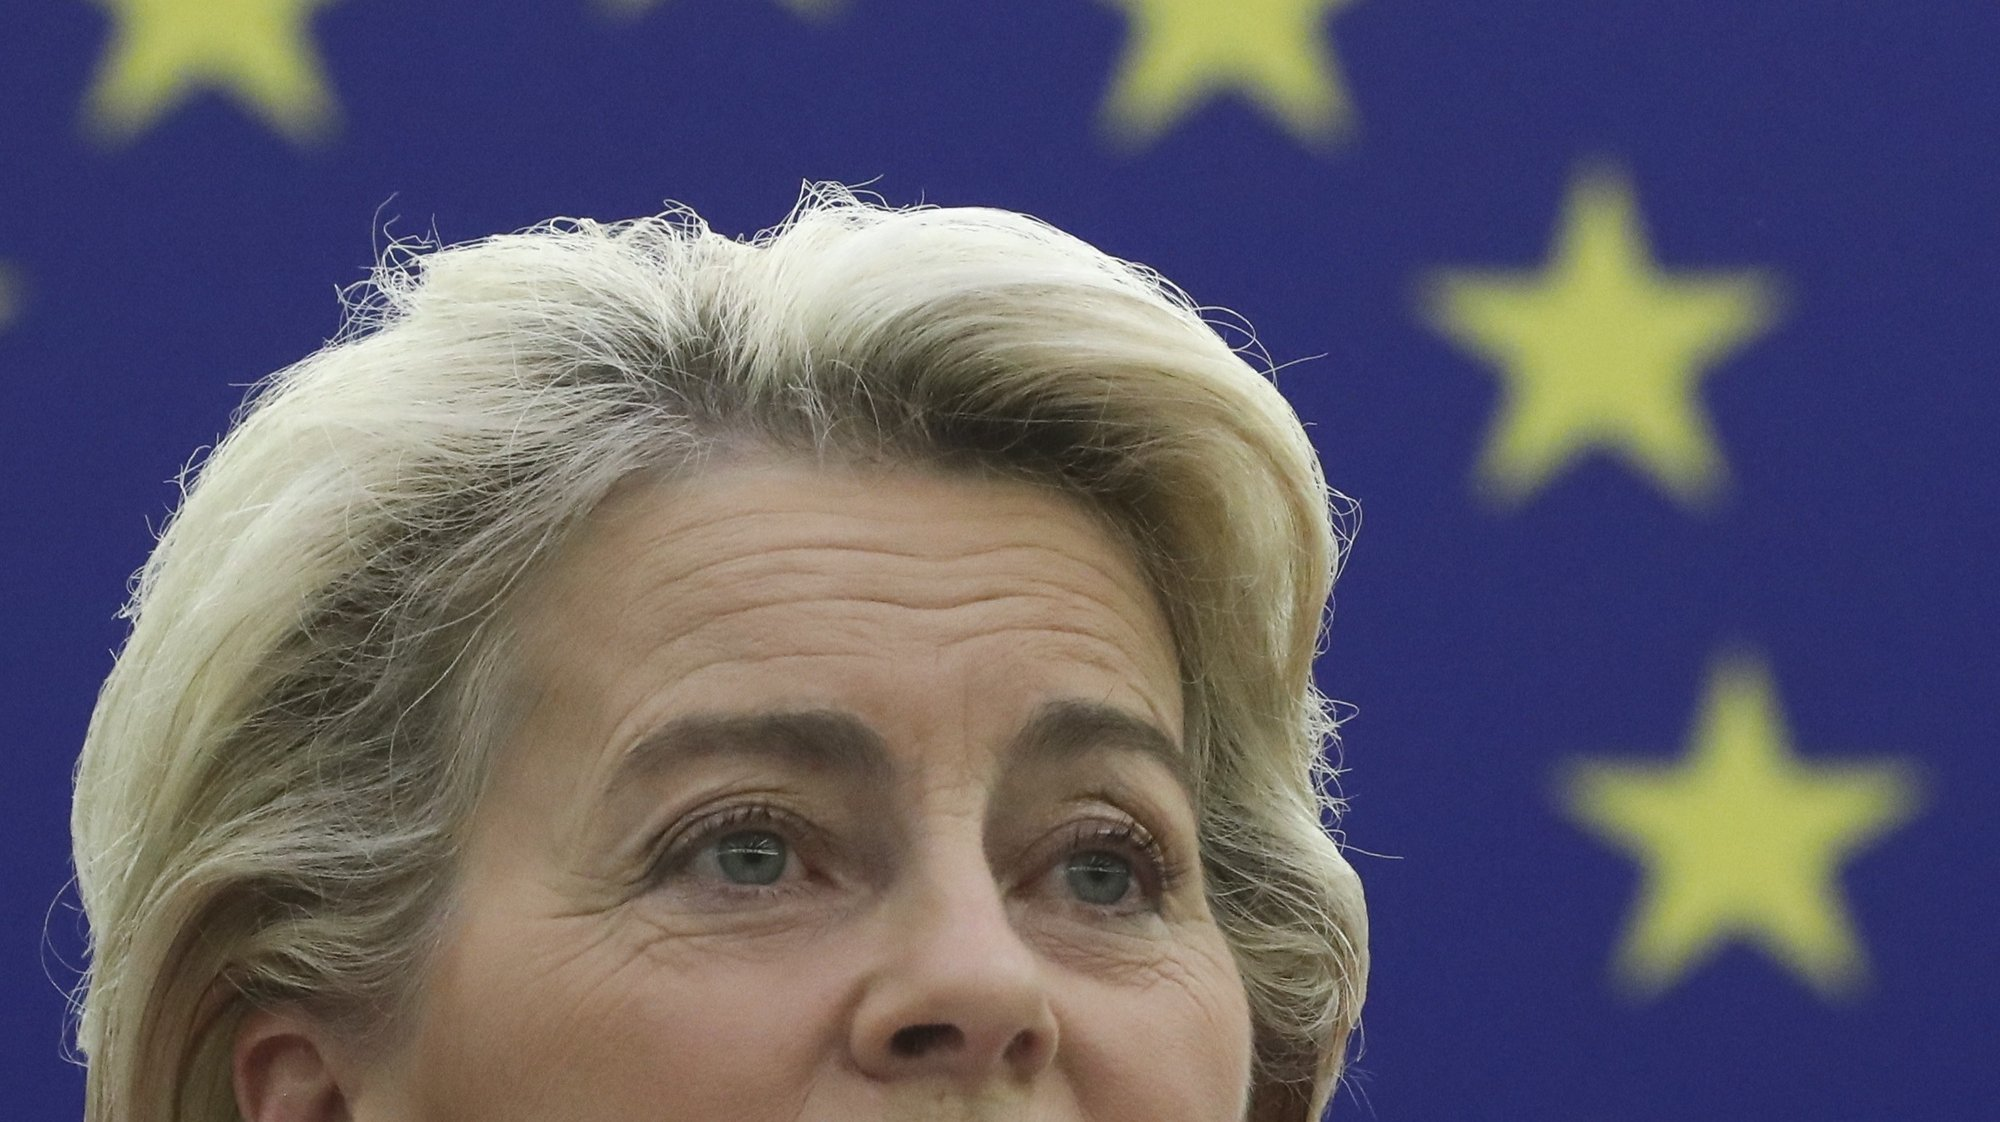 epa09469202 European Commission President Ursula von der Leyen delivers a speech during a debate on 'The State of the European Union' at the European Parliament in Strasbourg, France, 15 September 2021.  EPA/YVES HERMAN / POOL  MAXPPP OUT